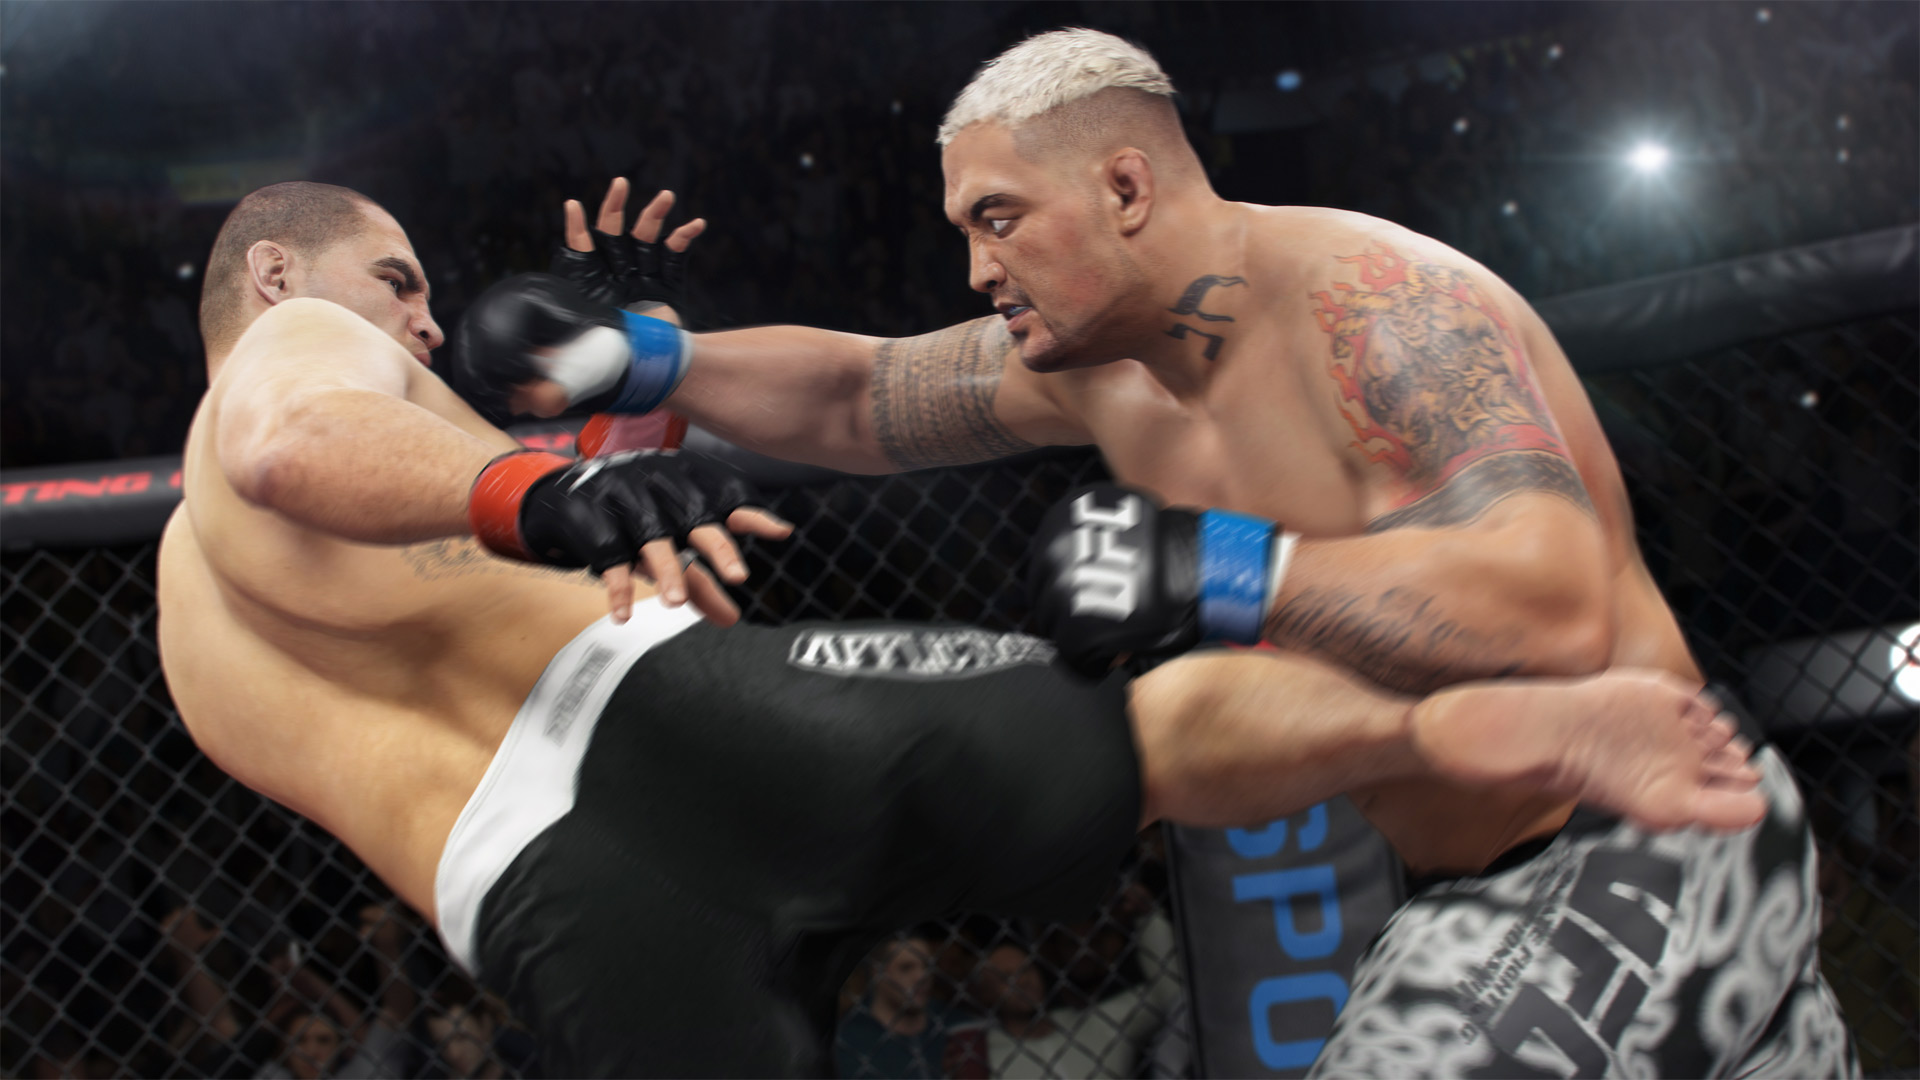 ea sports ufc on ps4 official playstation�store us